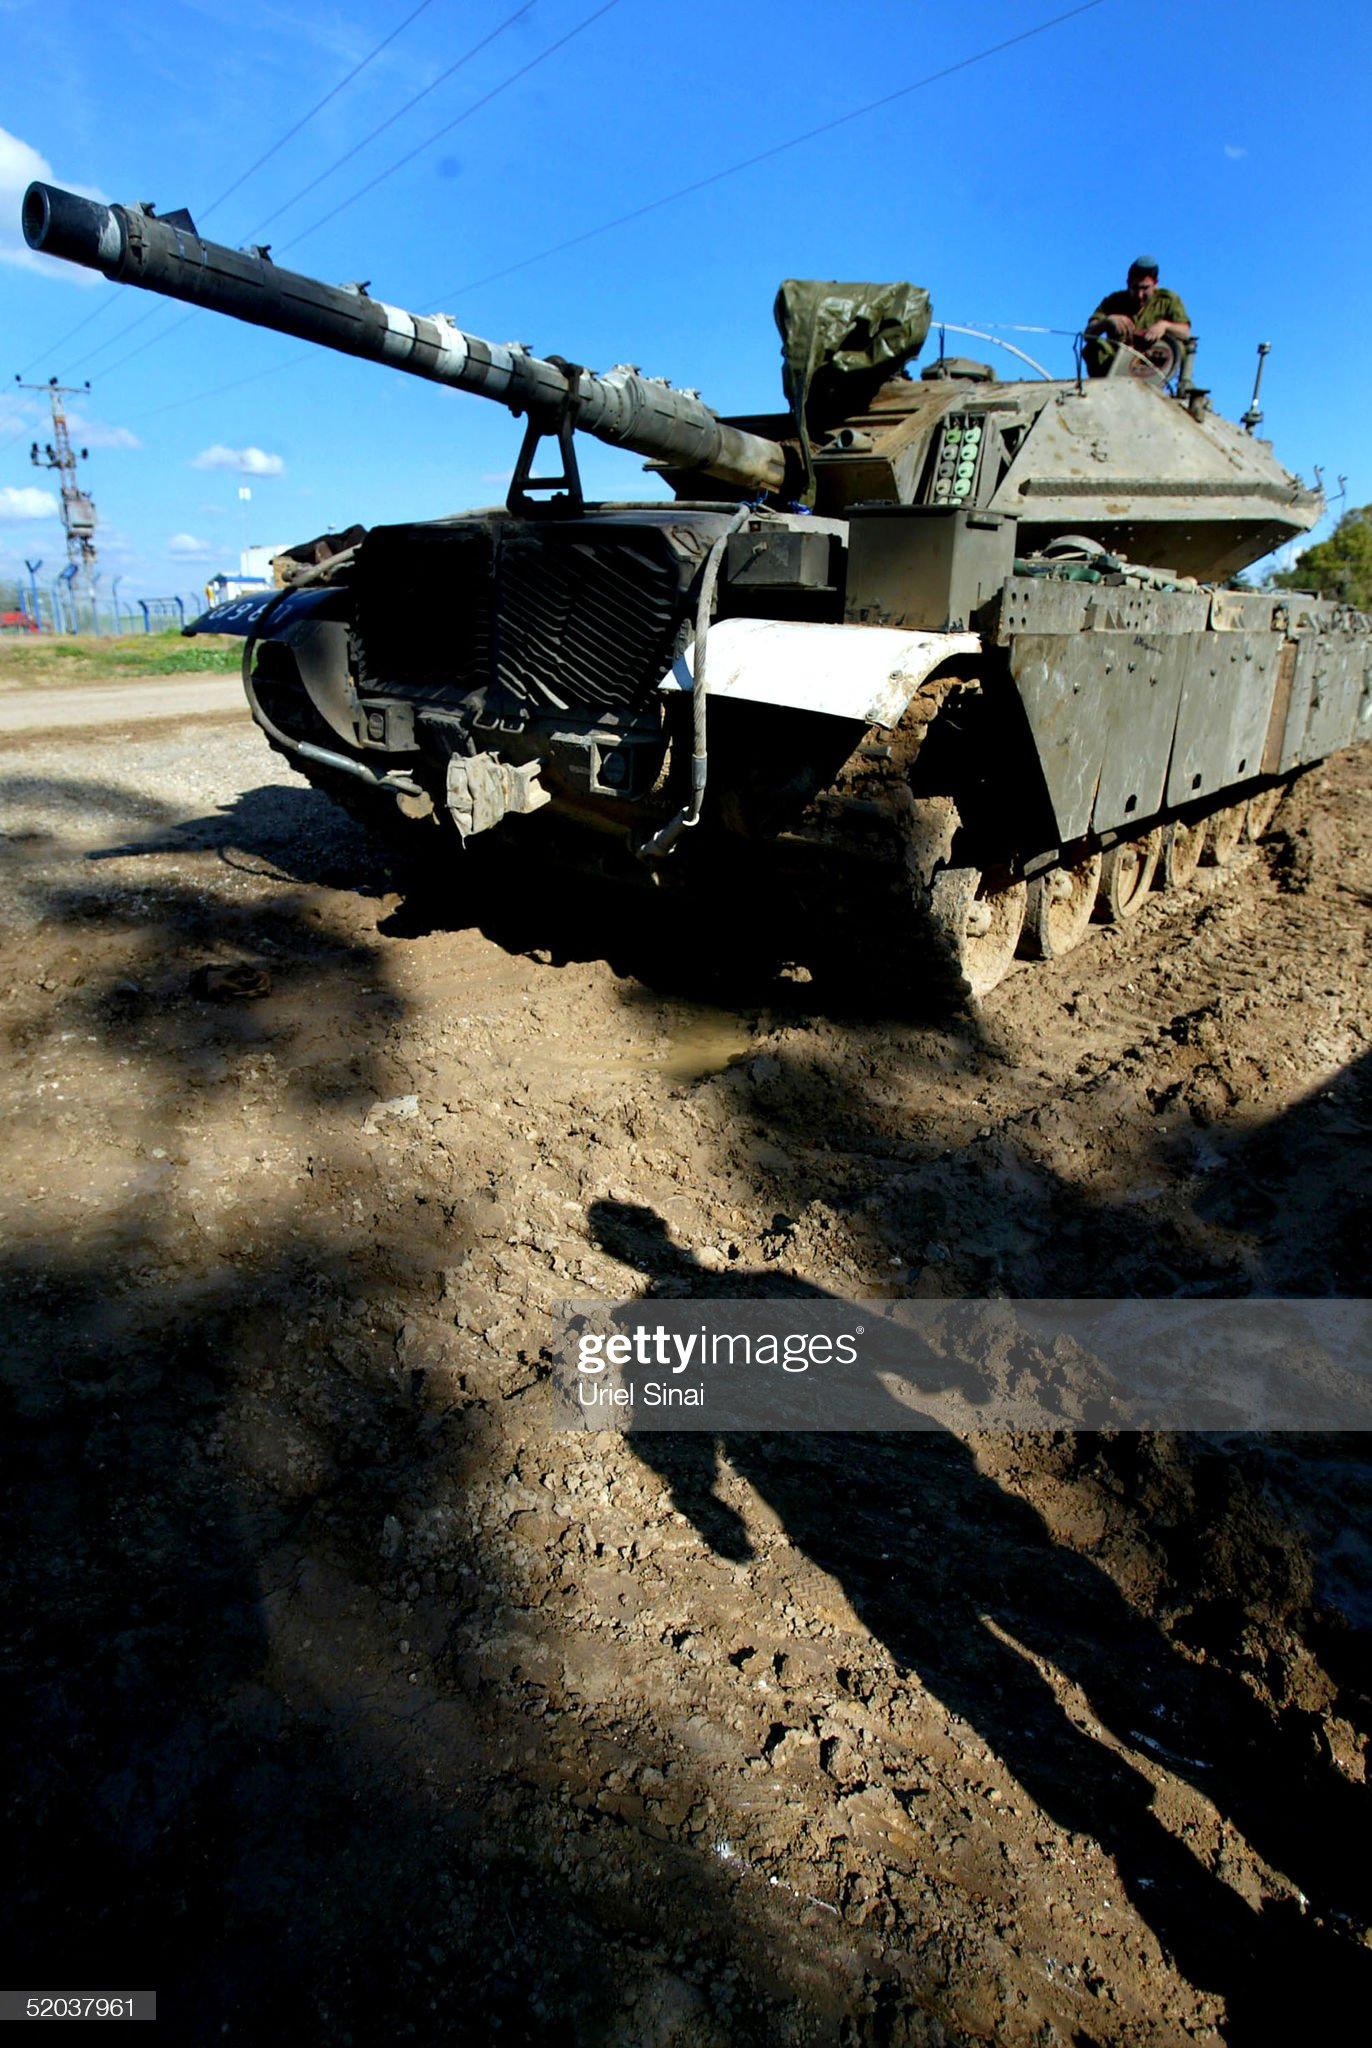 https://media.gettyimages.com/photos/israeli-sodiers-inspect-tanks-near-the-border-of-the-gaza-strip-on-picture-id52037961?s=2048x2048